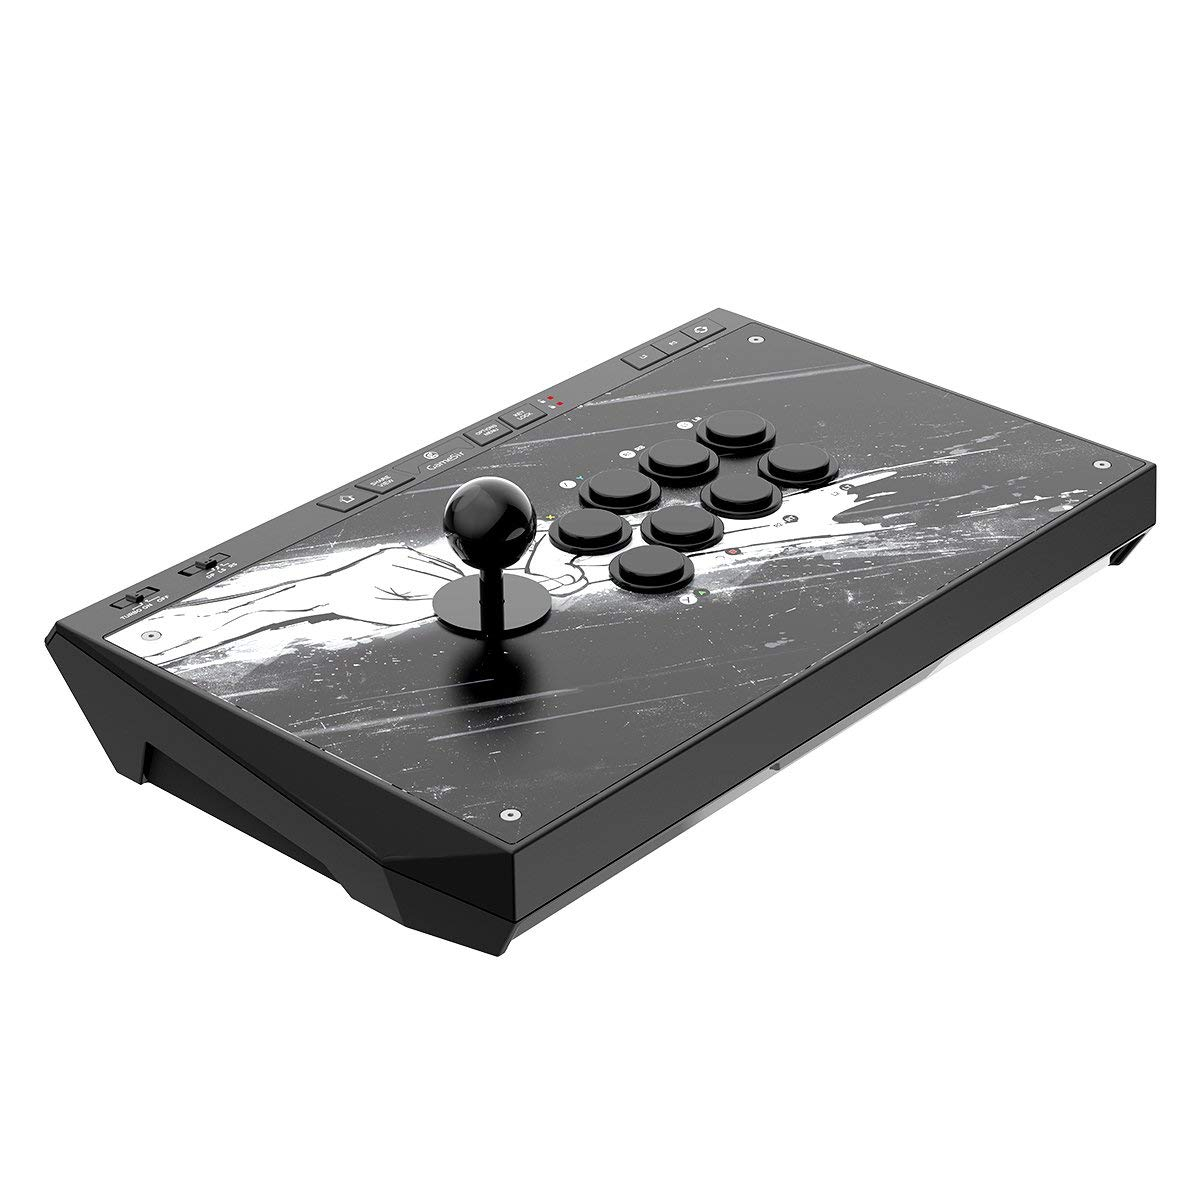 GameSir C2 Arcade Fightstick para Xbox One, PlayStation 4, Windows PC y Android imagen